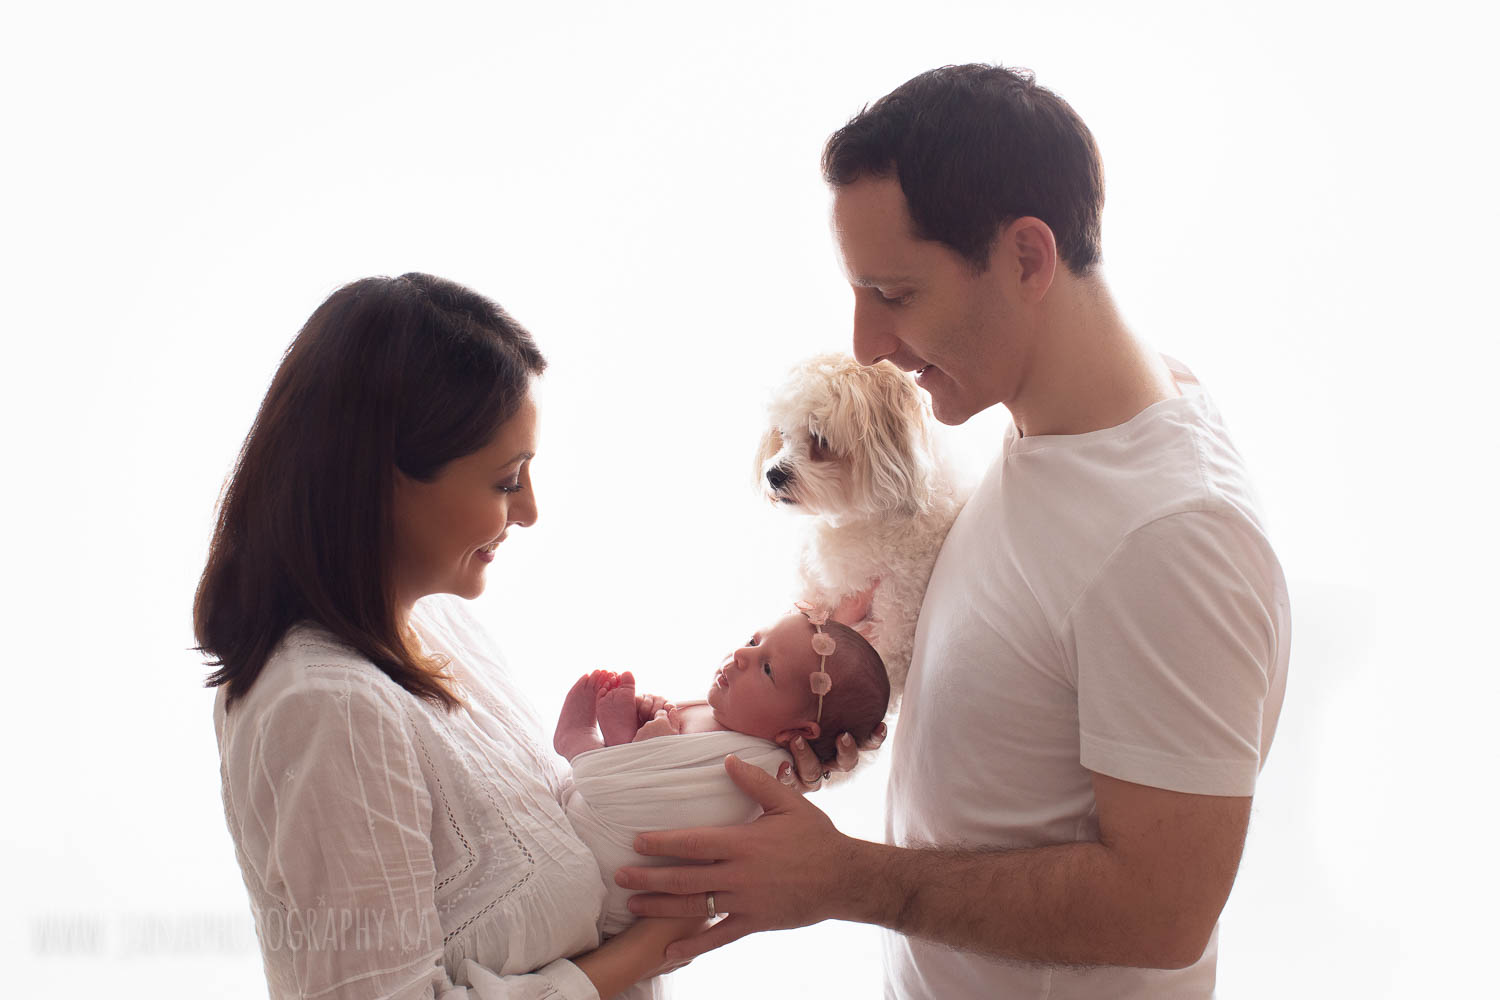 family picture with a dog and newborn baby girl - jana photography vancouver